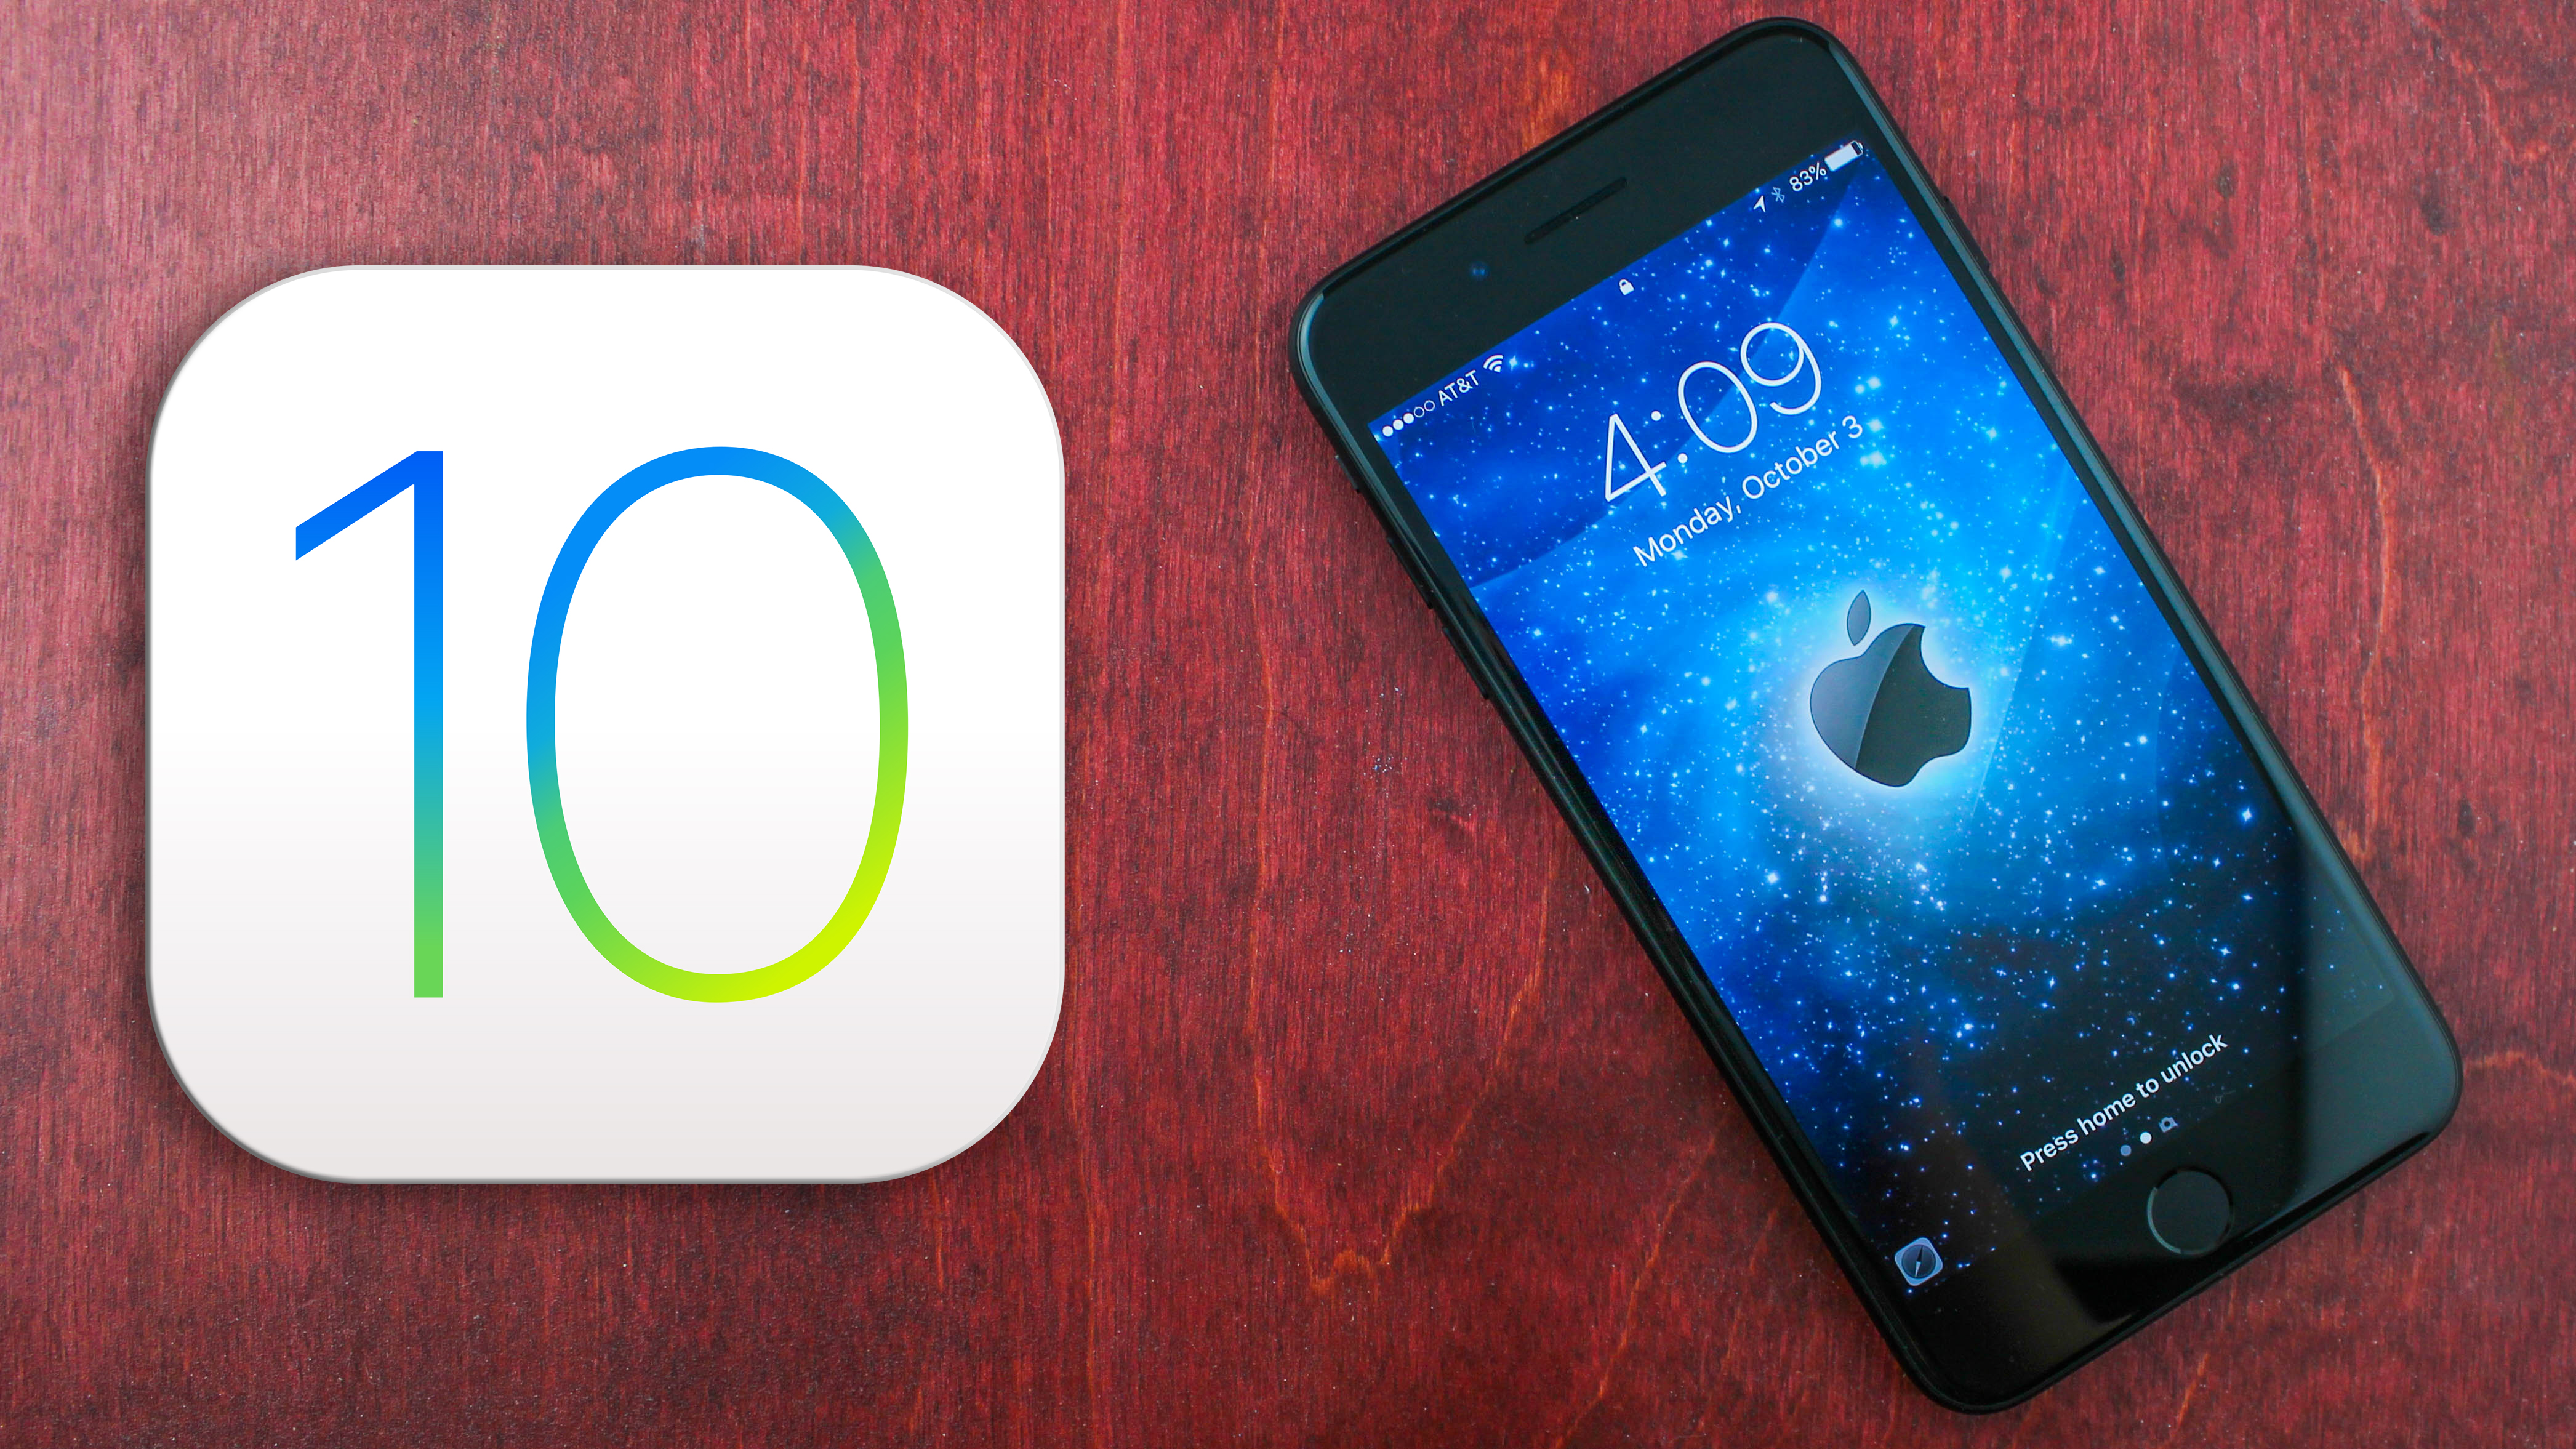 Ios 10 To Ios 10 And Ios 10 3 Features And Updates Techradar